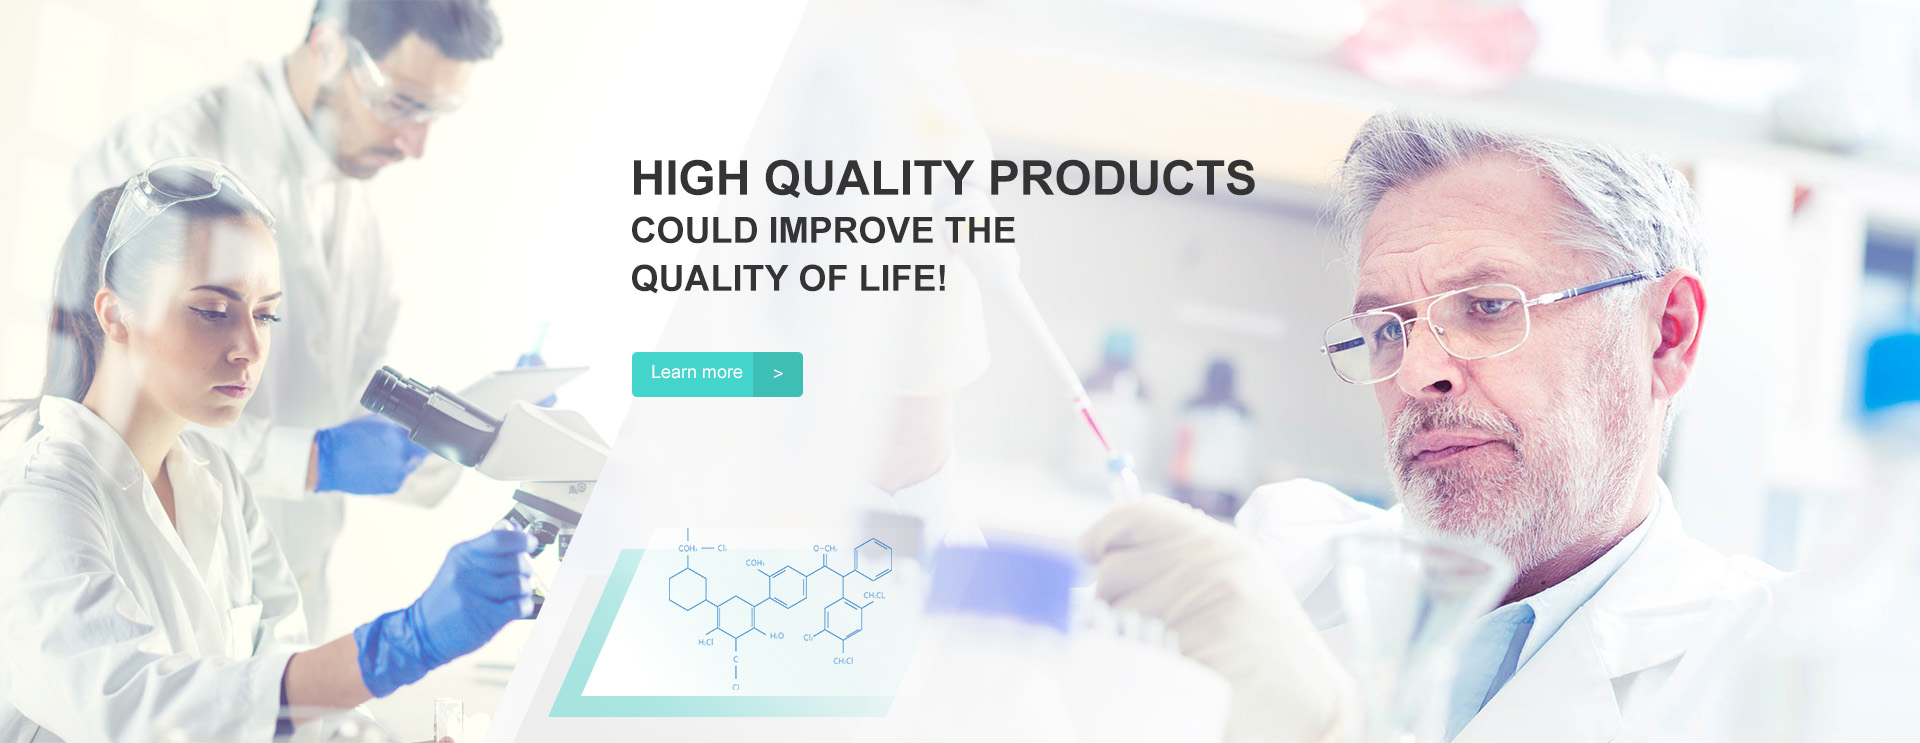 HIGH QUALITY PRODUCTS COULD IMPROVE THE QUALITY OF LIFE!